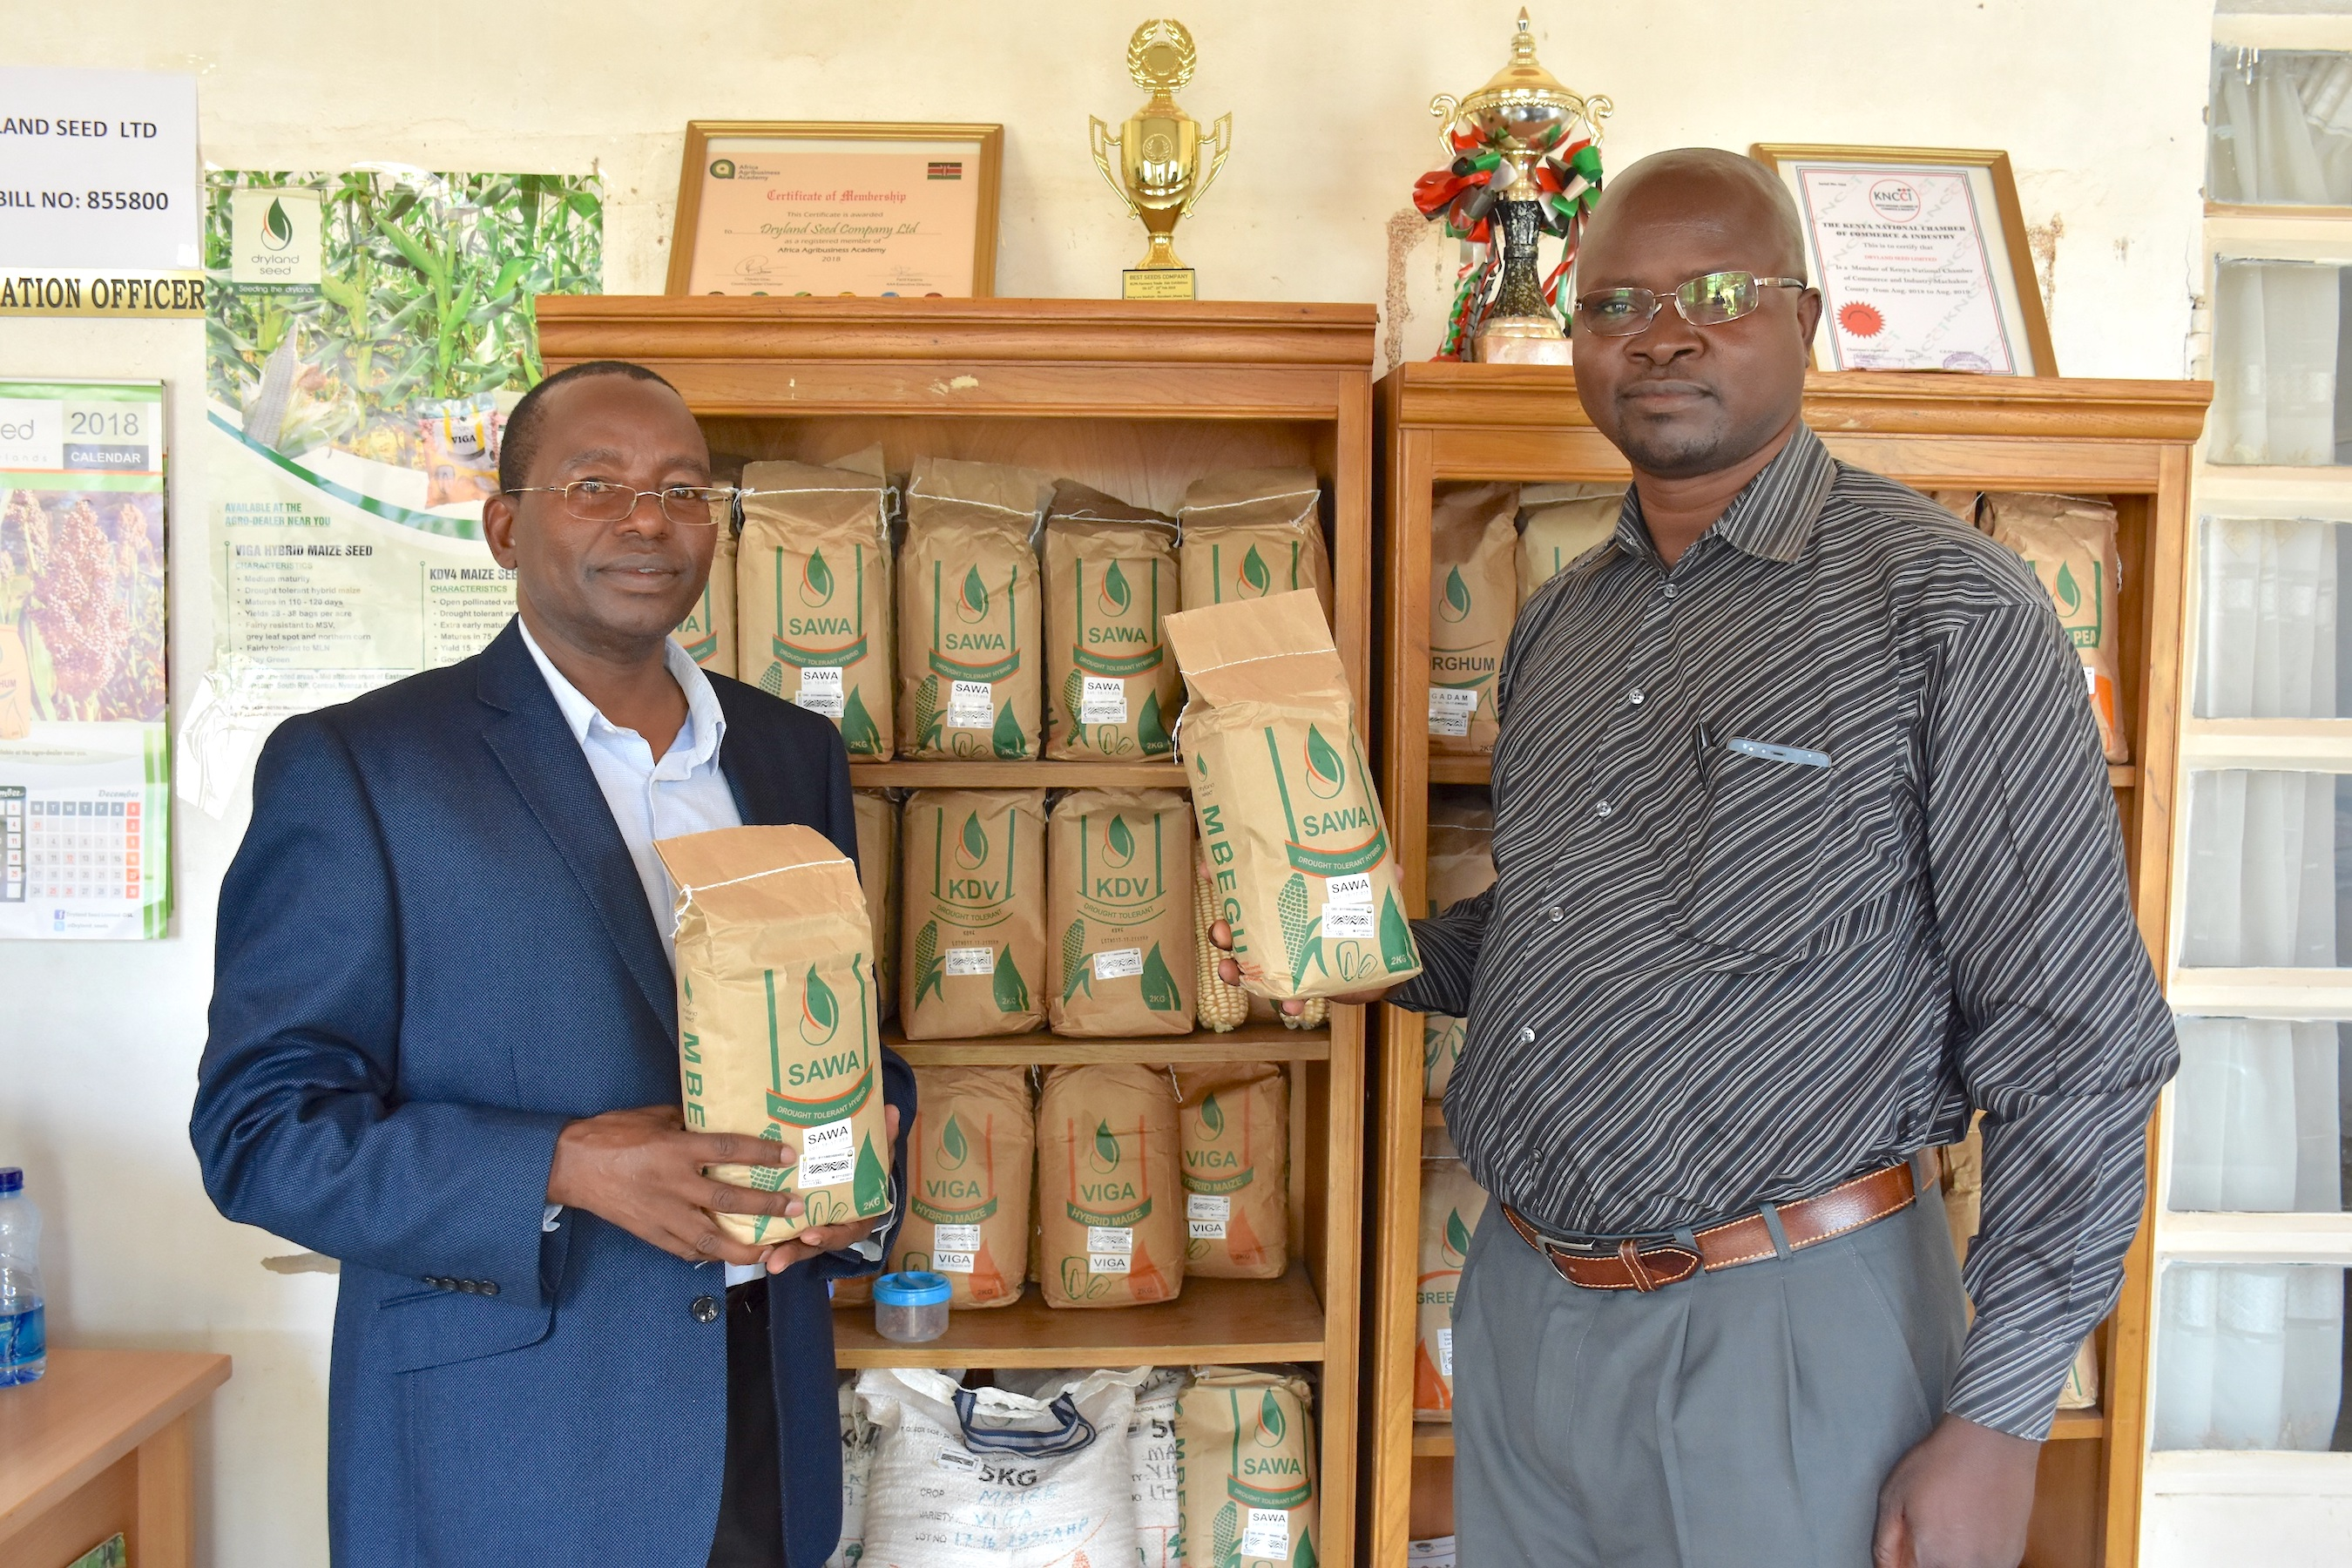 The managing director of Dryland Seed, Ngila Kimotho (left), shows packages of SAWA maize seeds at the company's office. (Photo: Jerome Bossuet/CIMMYT)